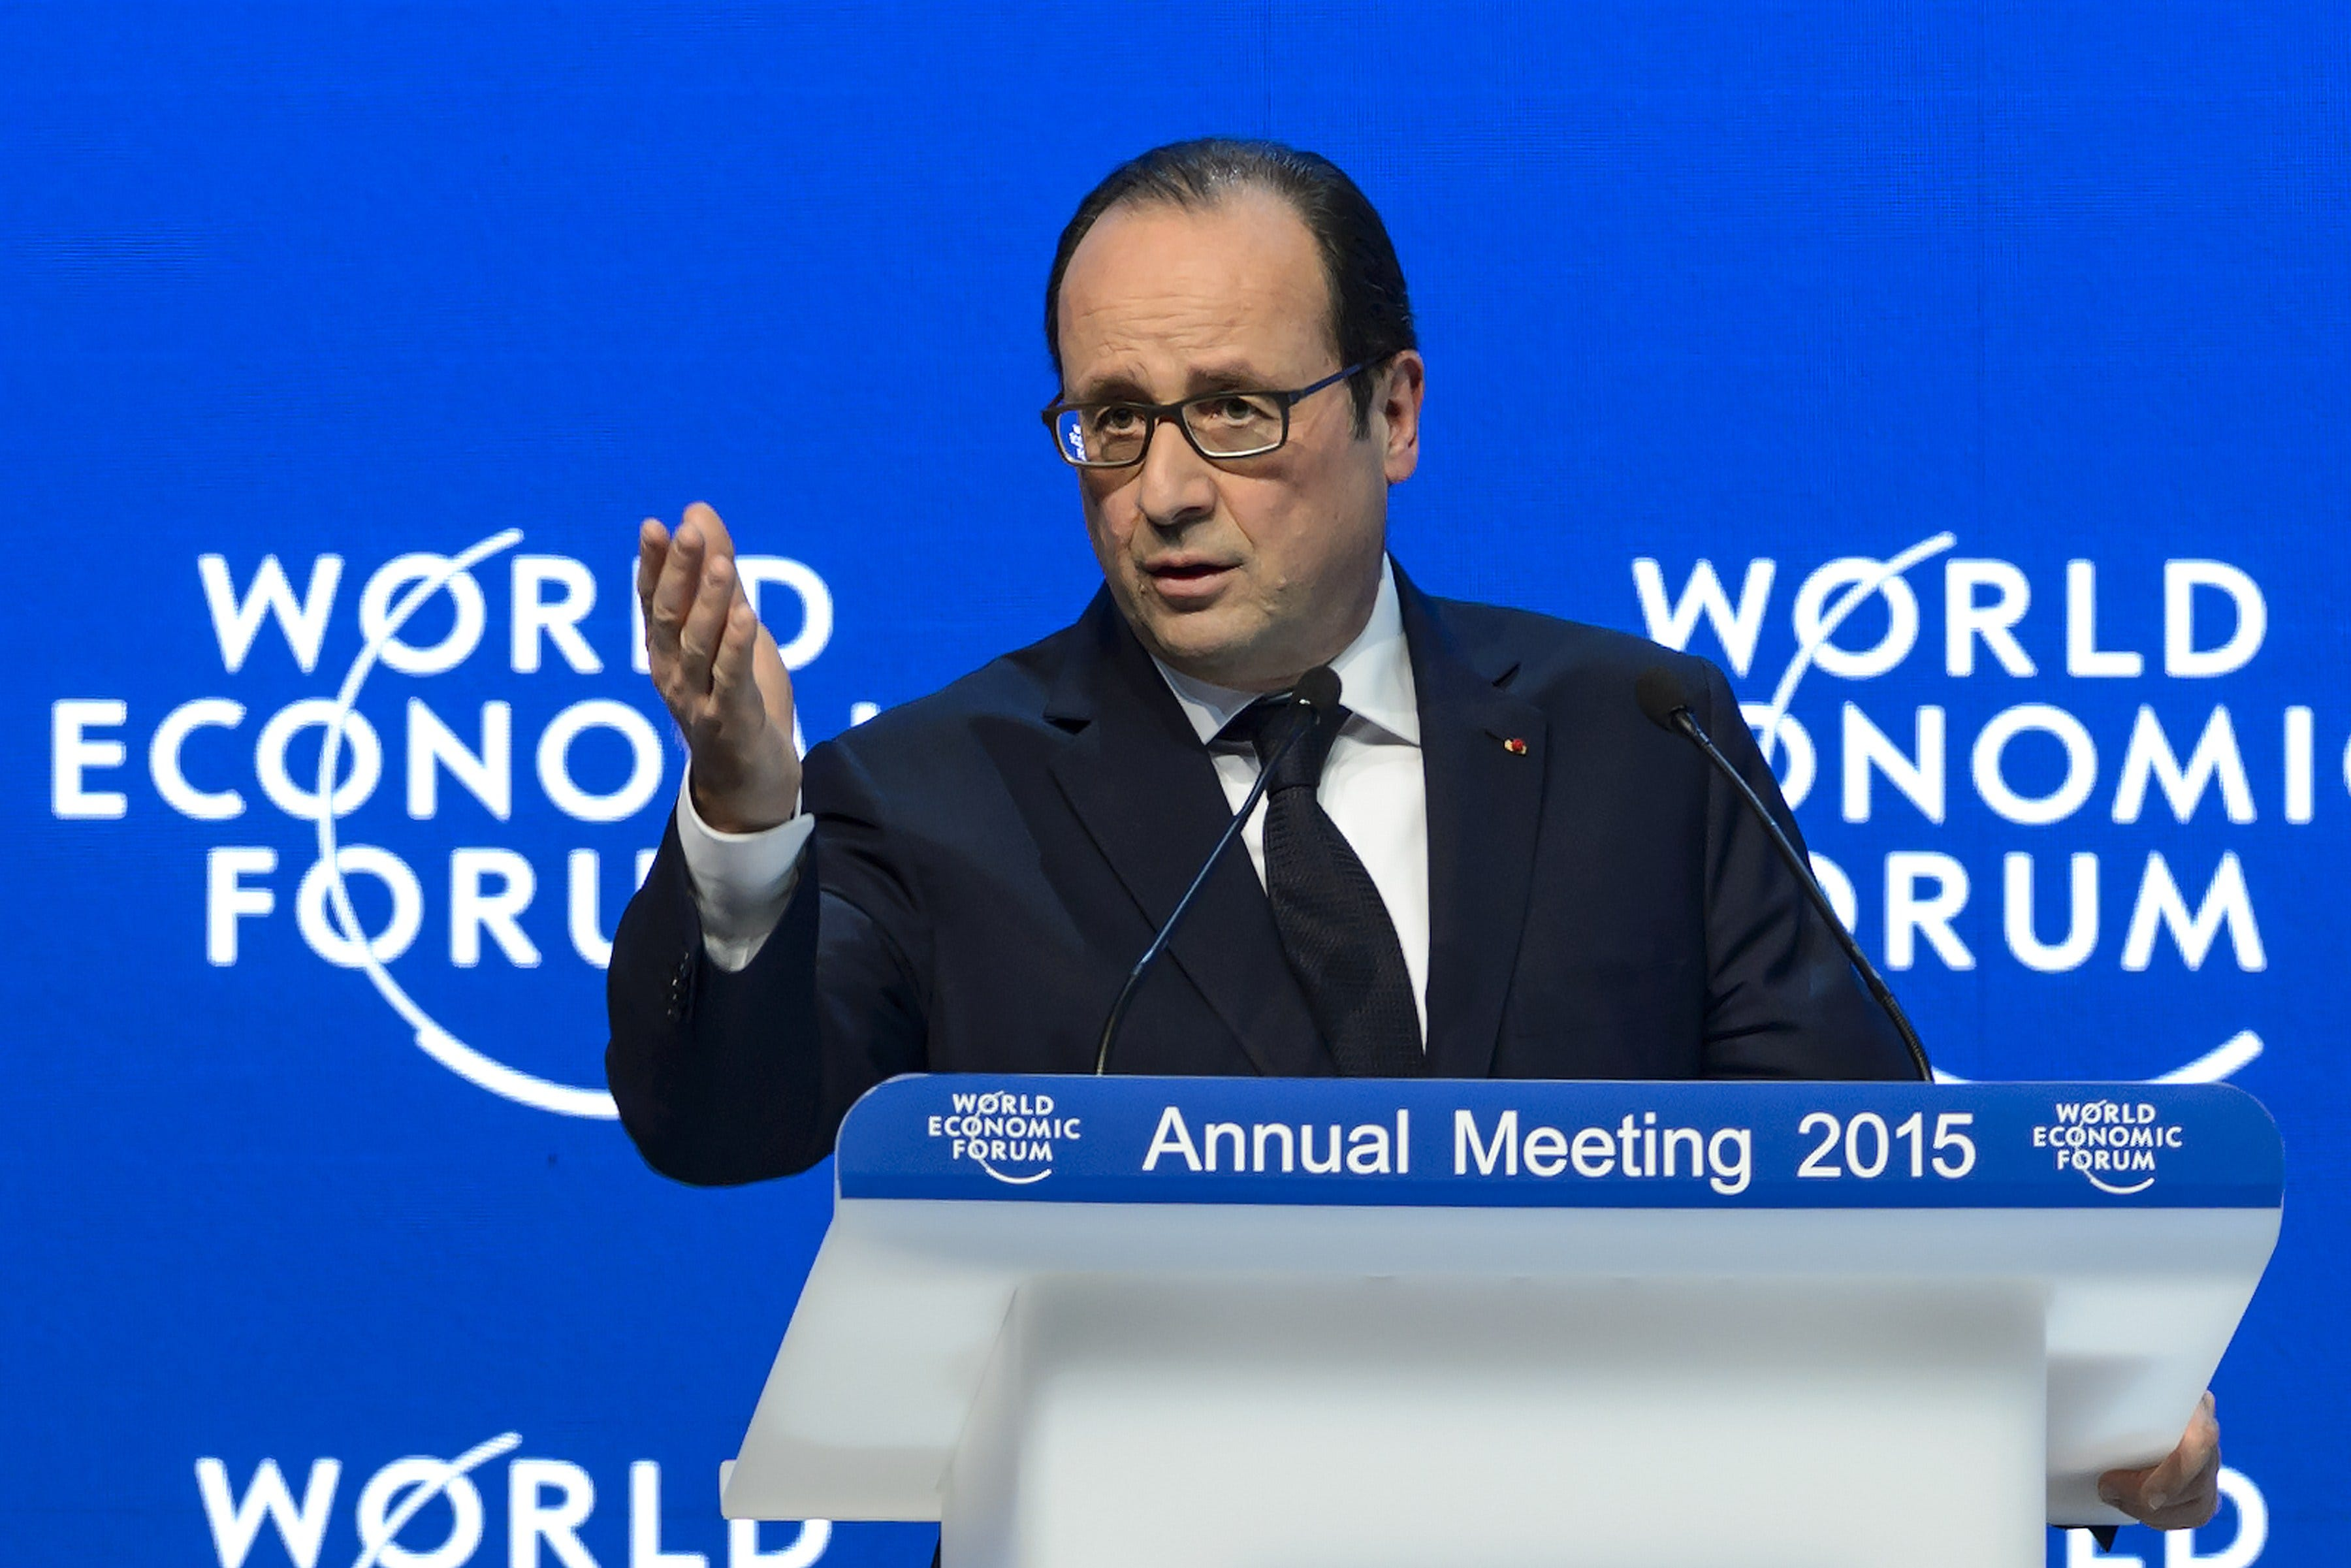 French president urges business to help fight terrorism